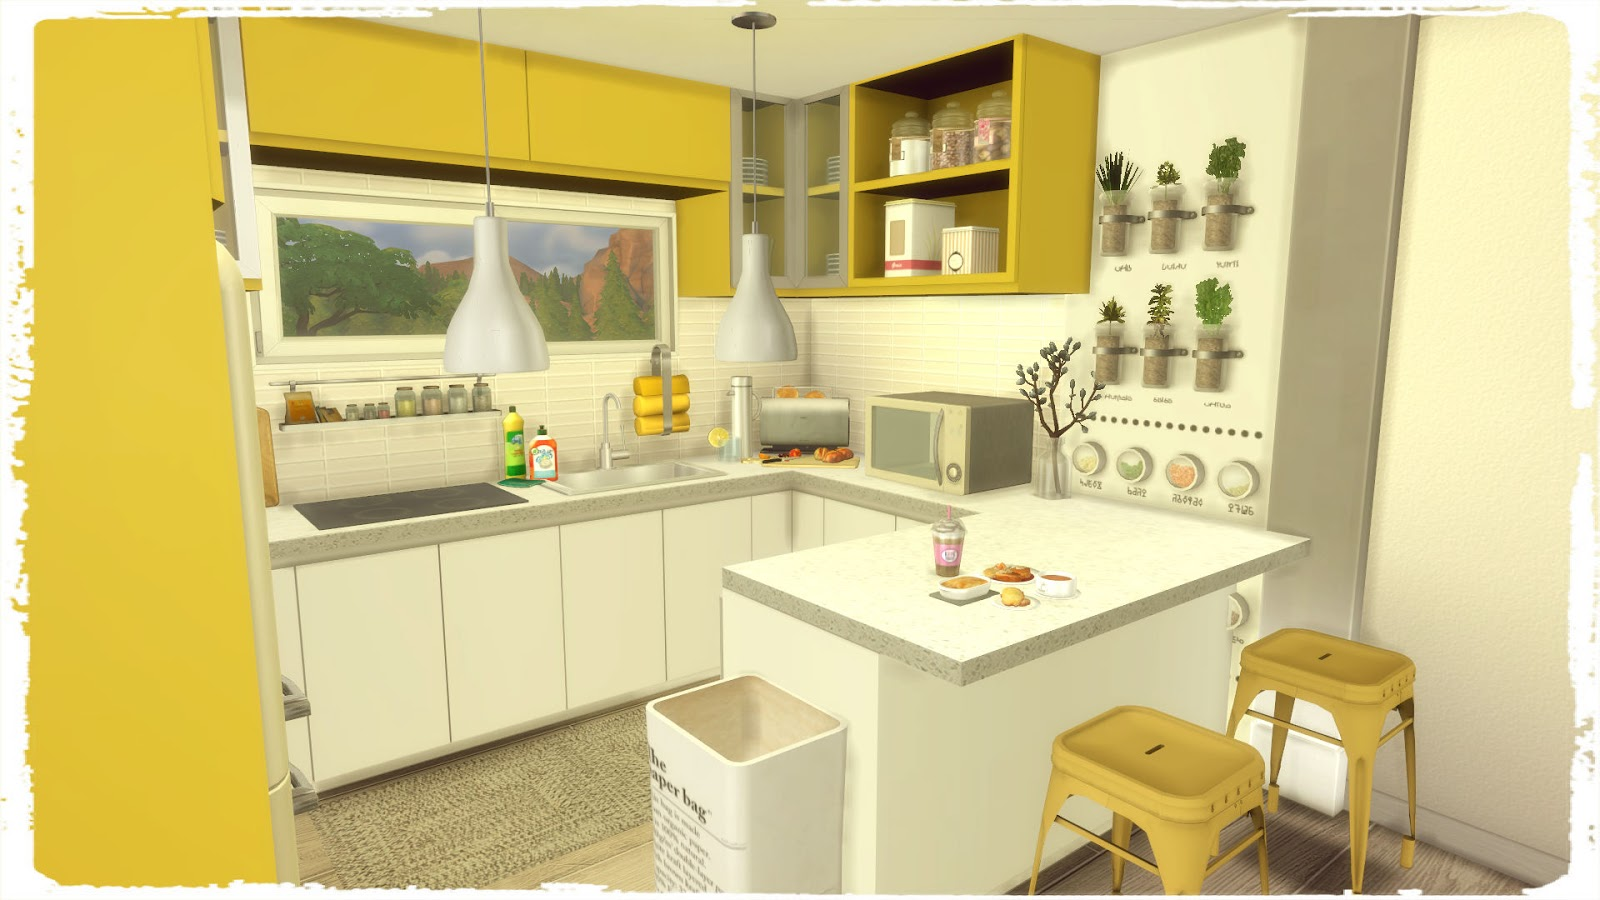 Sims 4 blue yellow kitchen with livingroom dinha for Blue yellow kitchen